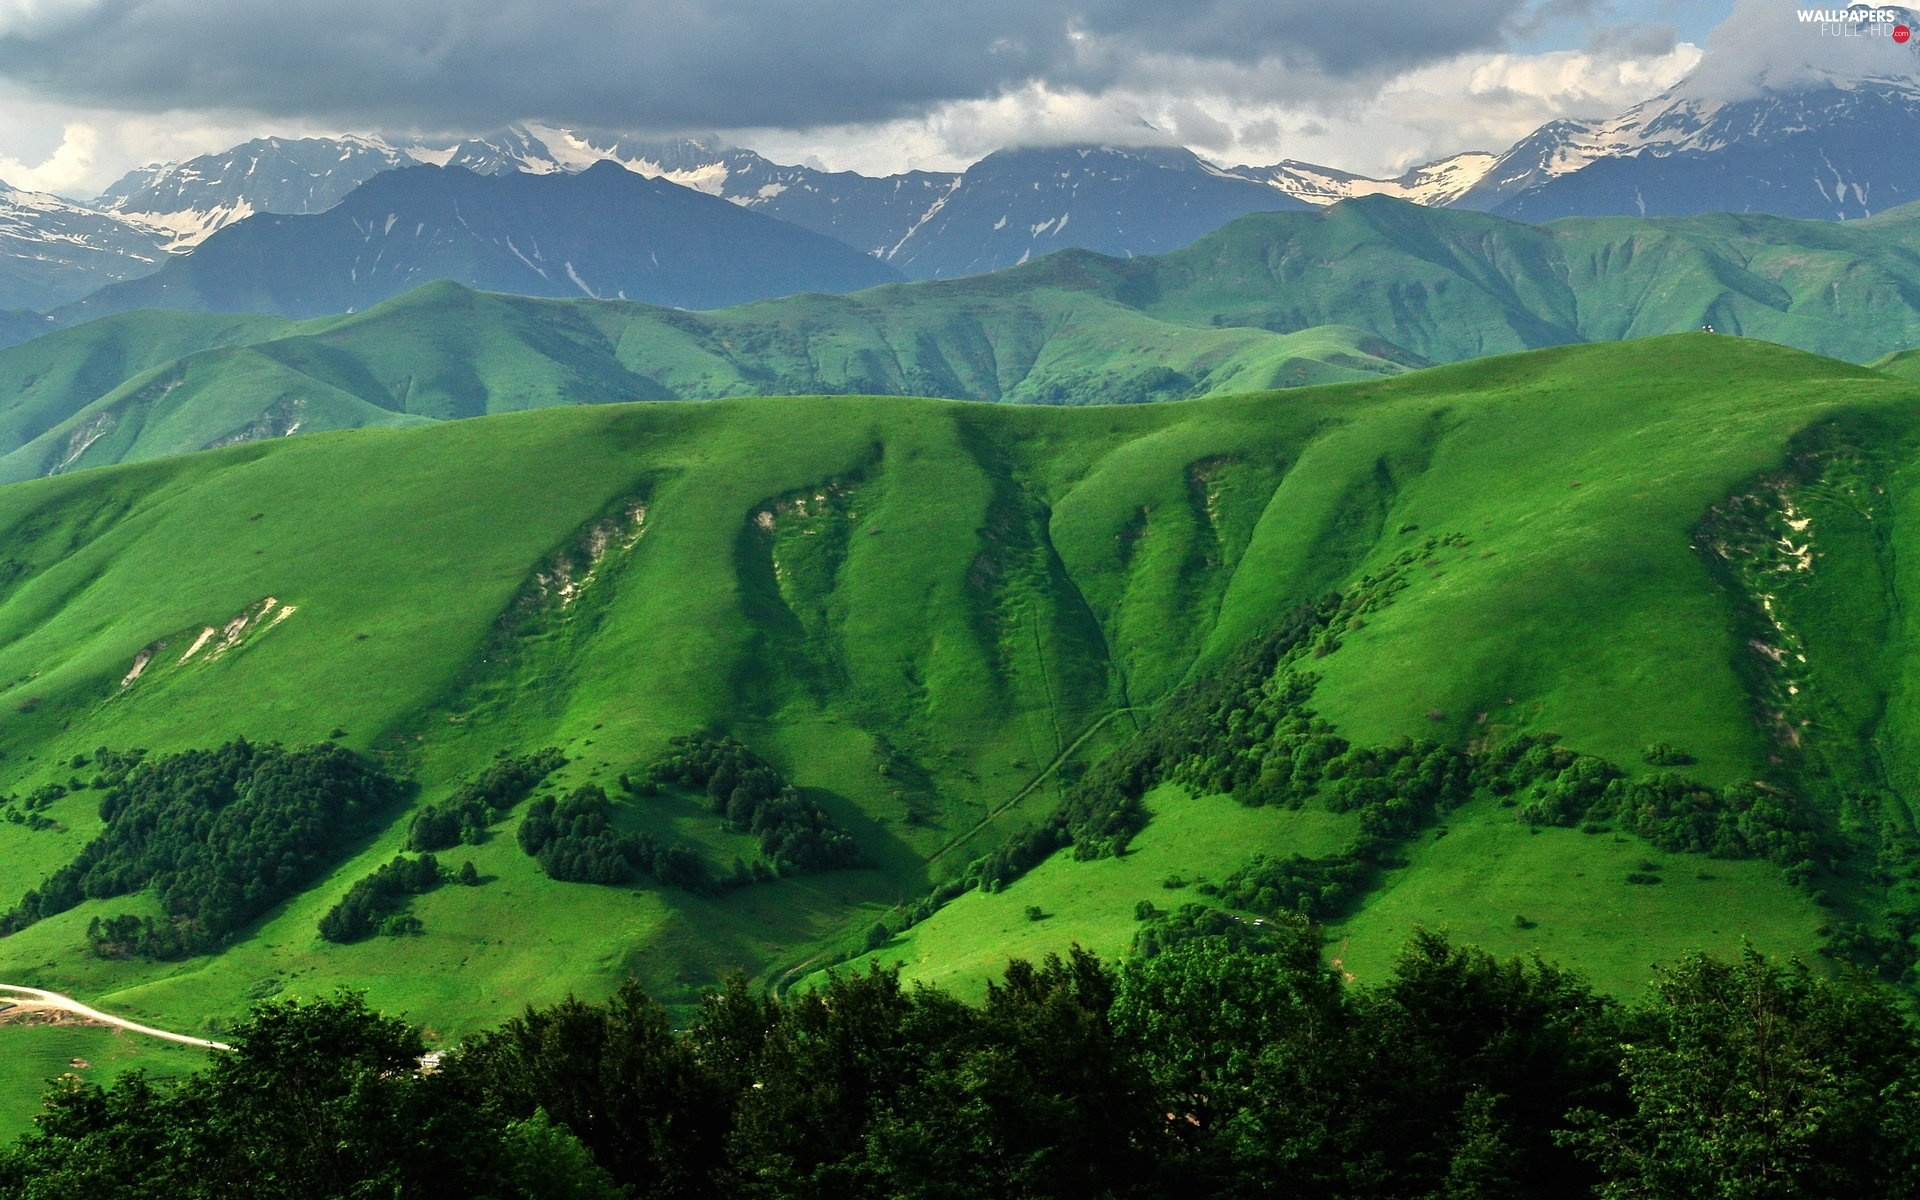 trees, The Hills, Mountains, viewes, green ones